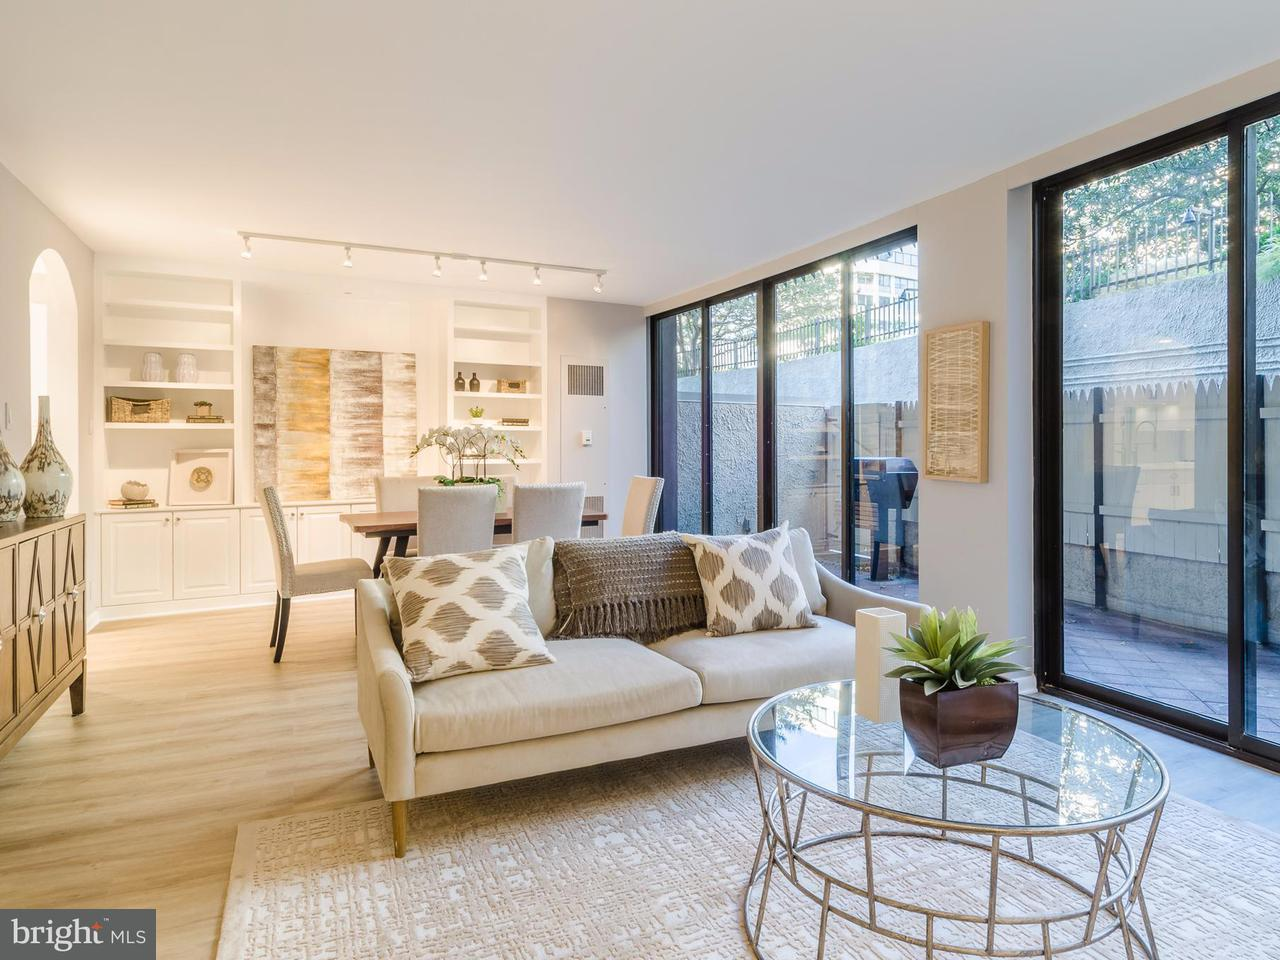 Condominium for Sale at 700 New Hampshire Ave Nw #118 700 New Hampshire Ave Nw #118 Washington, District Of Columbia 20037 United States